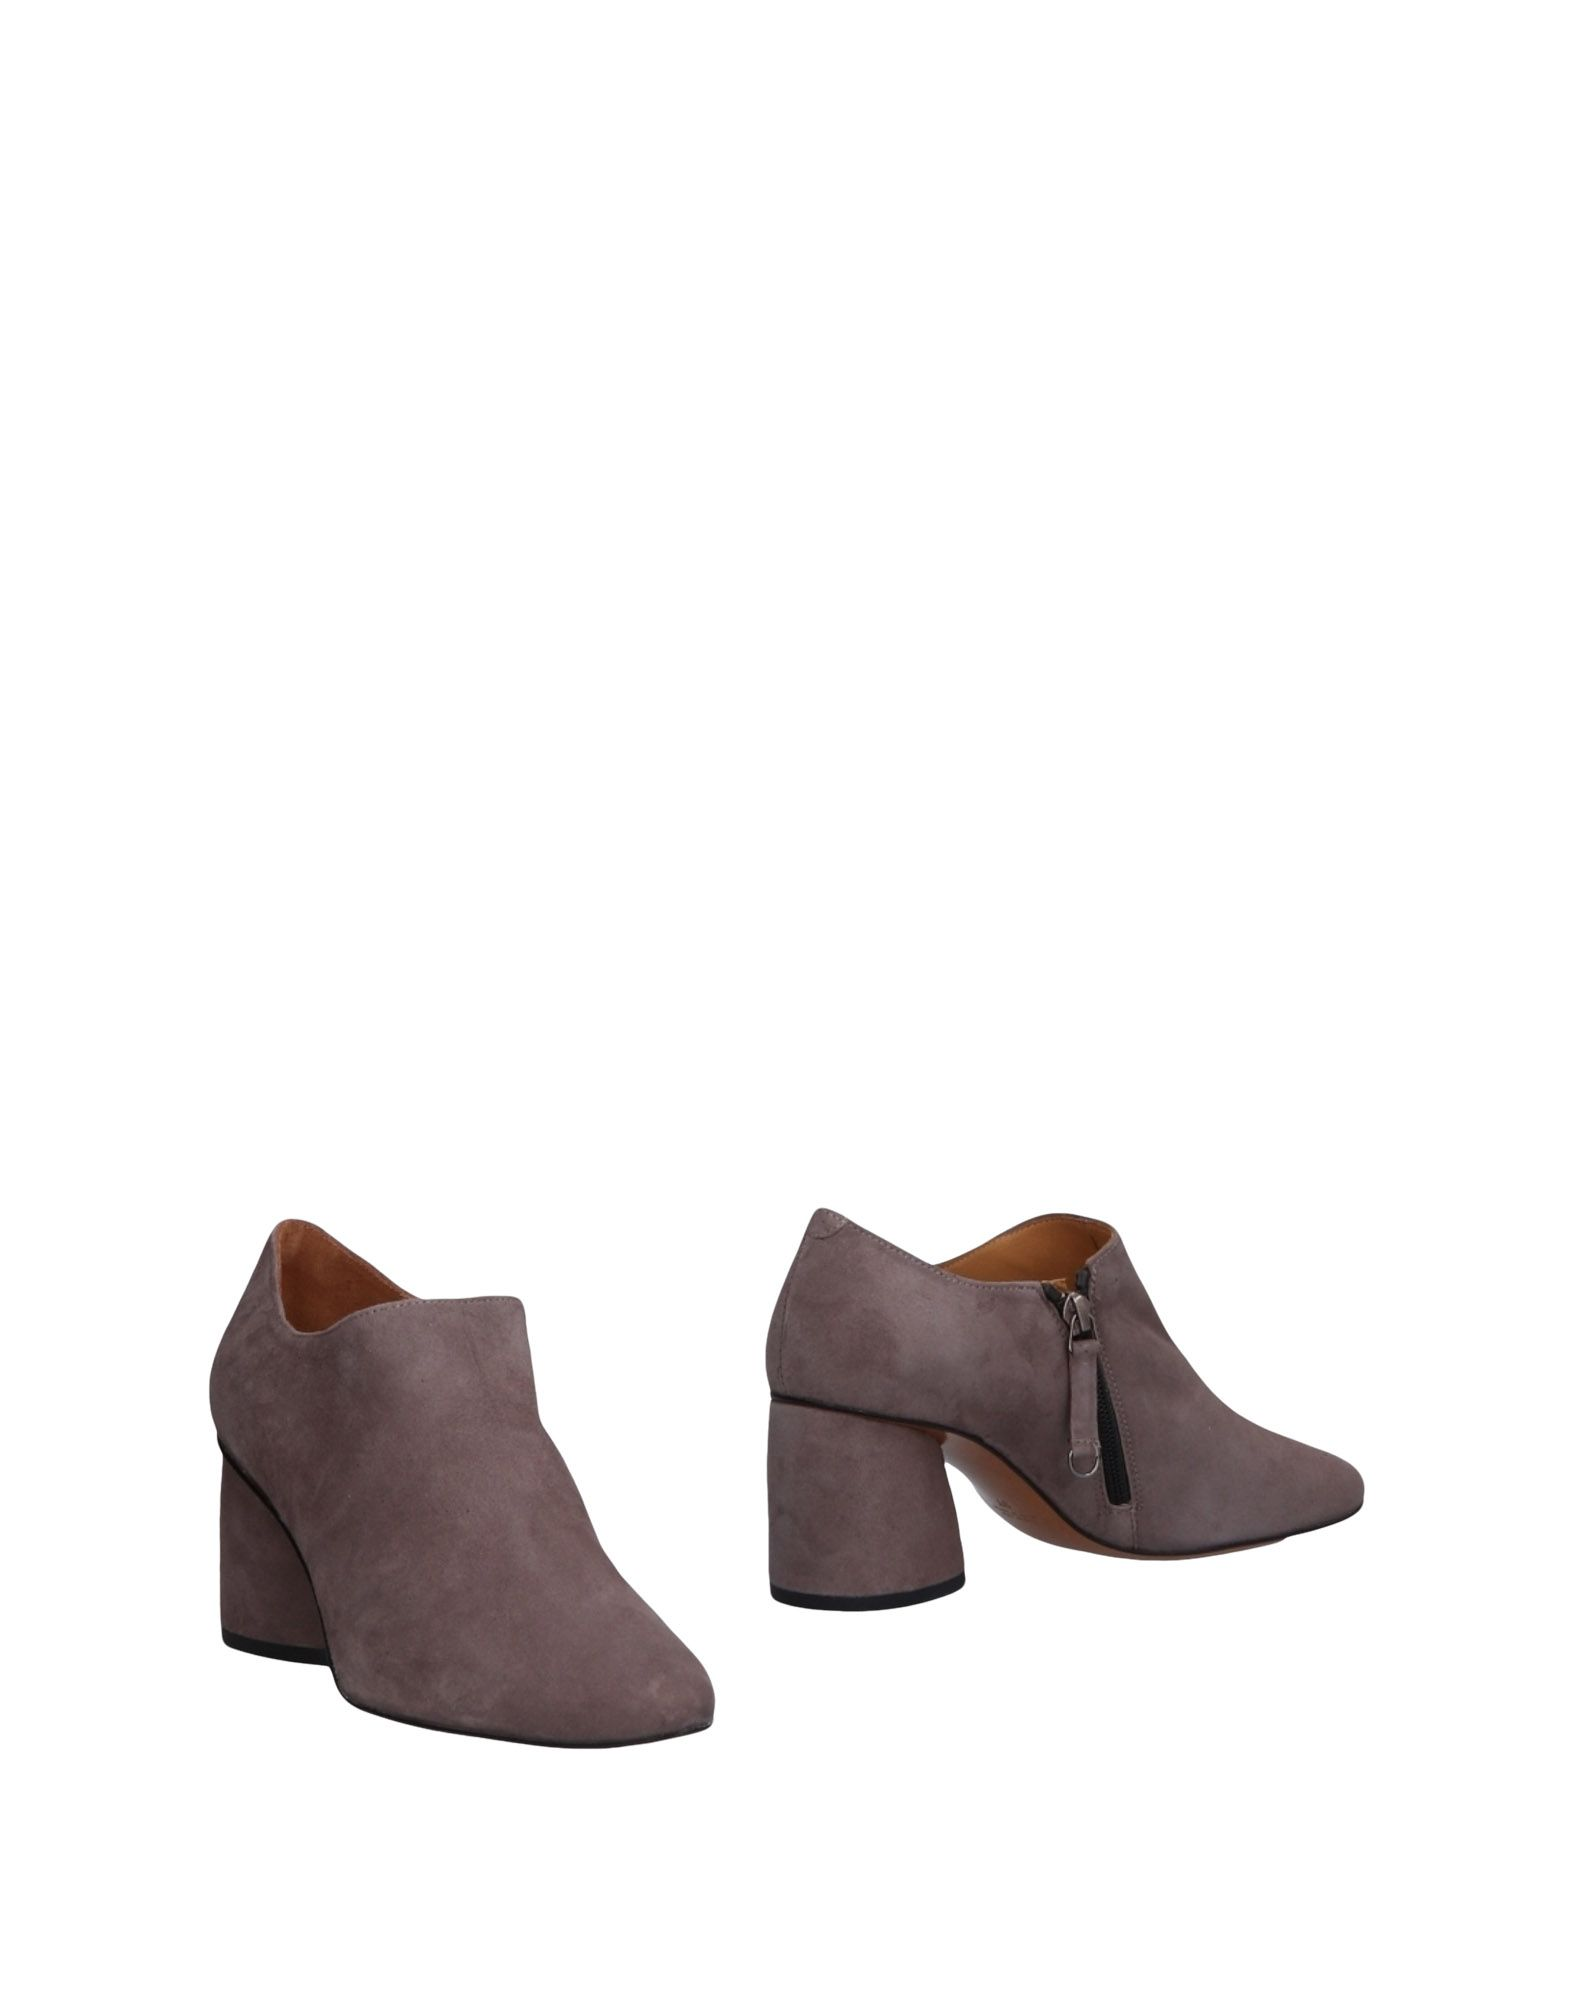 Audley Ankle Ankle Audley Boot - Women Audley Ankle Boots online on  Canada - 11474771VC 442b37